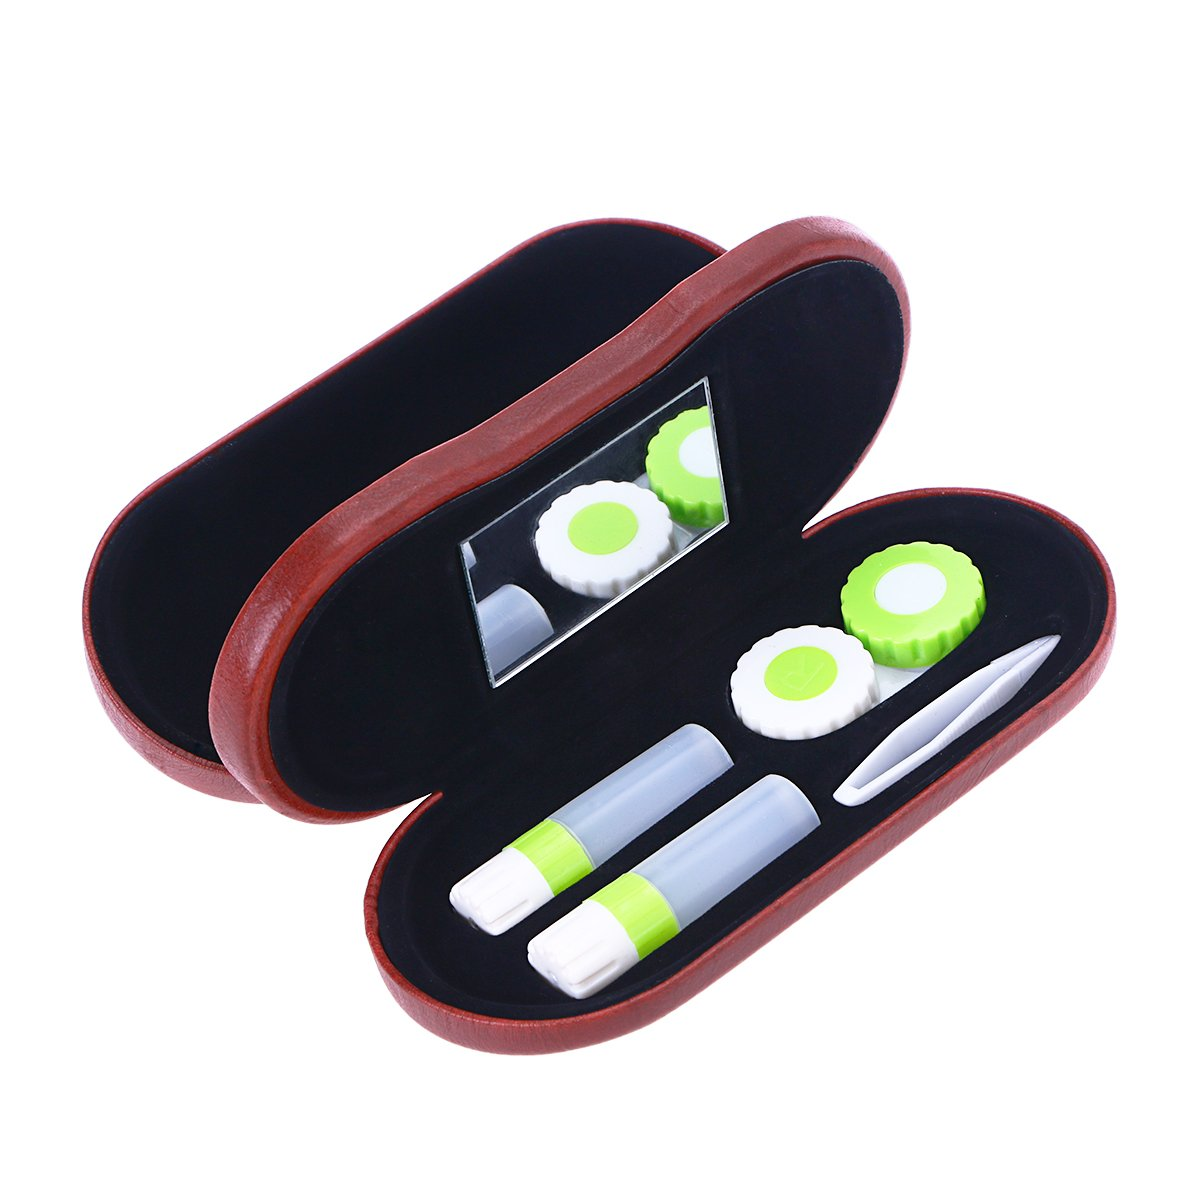 ROSENICE Contact Lenses 2-in-1 Eyeglass and Contact Lens Case Double Use Portable for Home Travel Kit(Red)